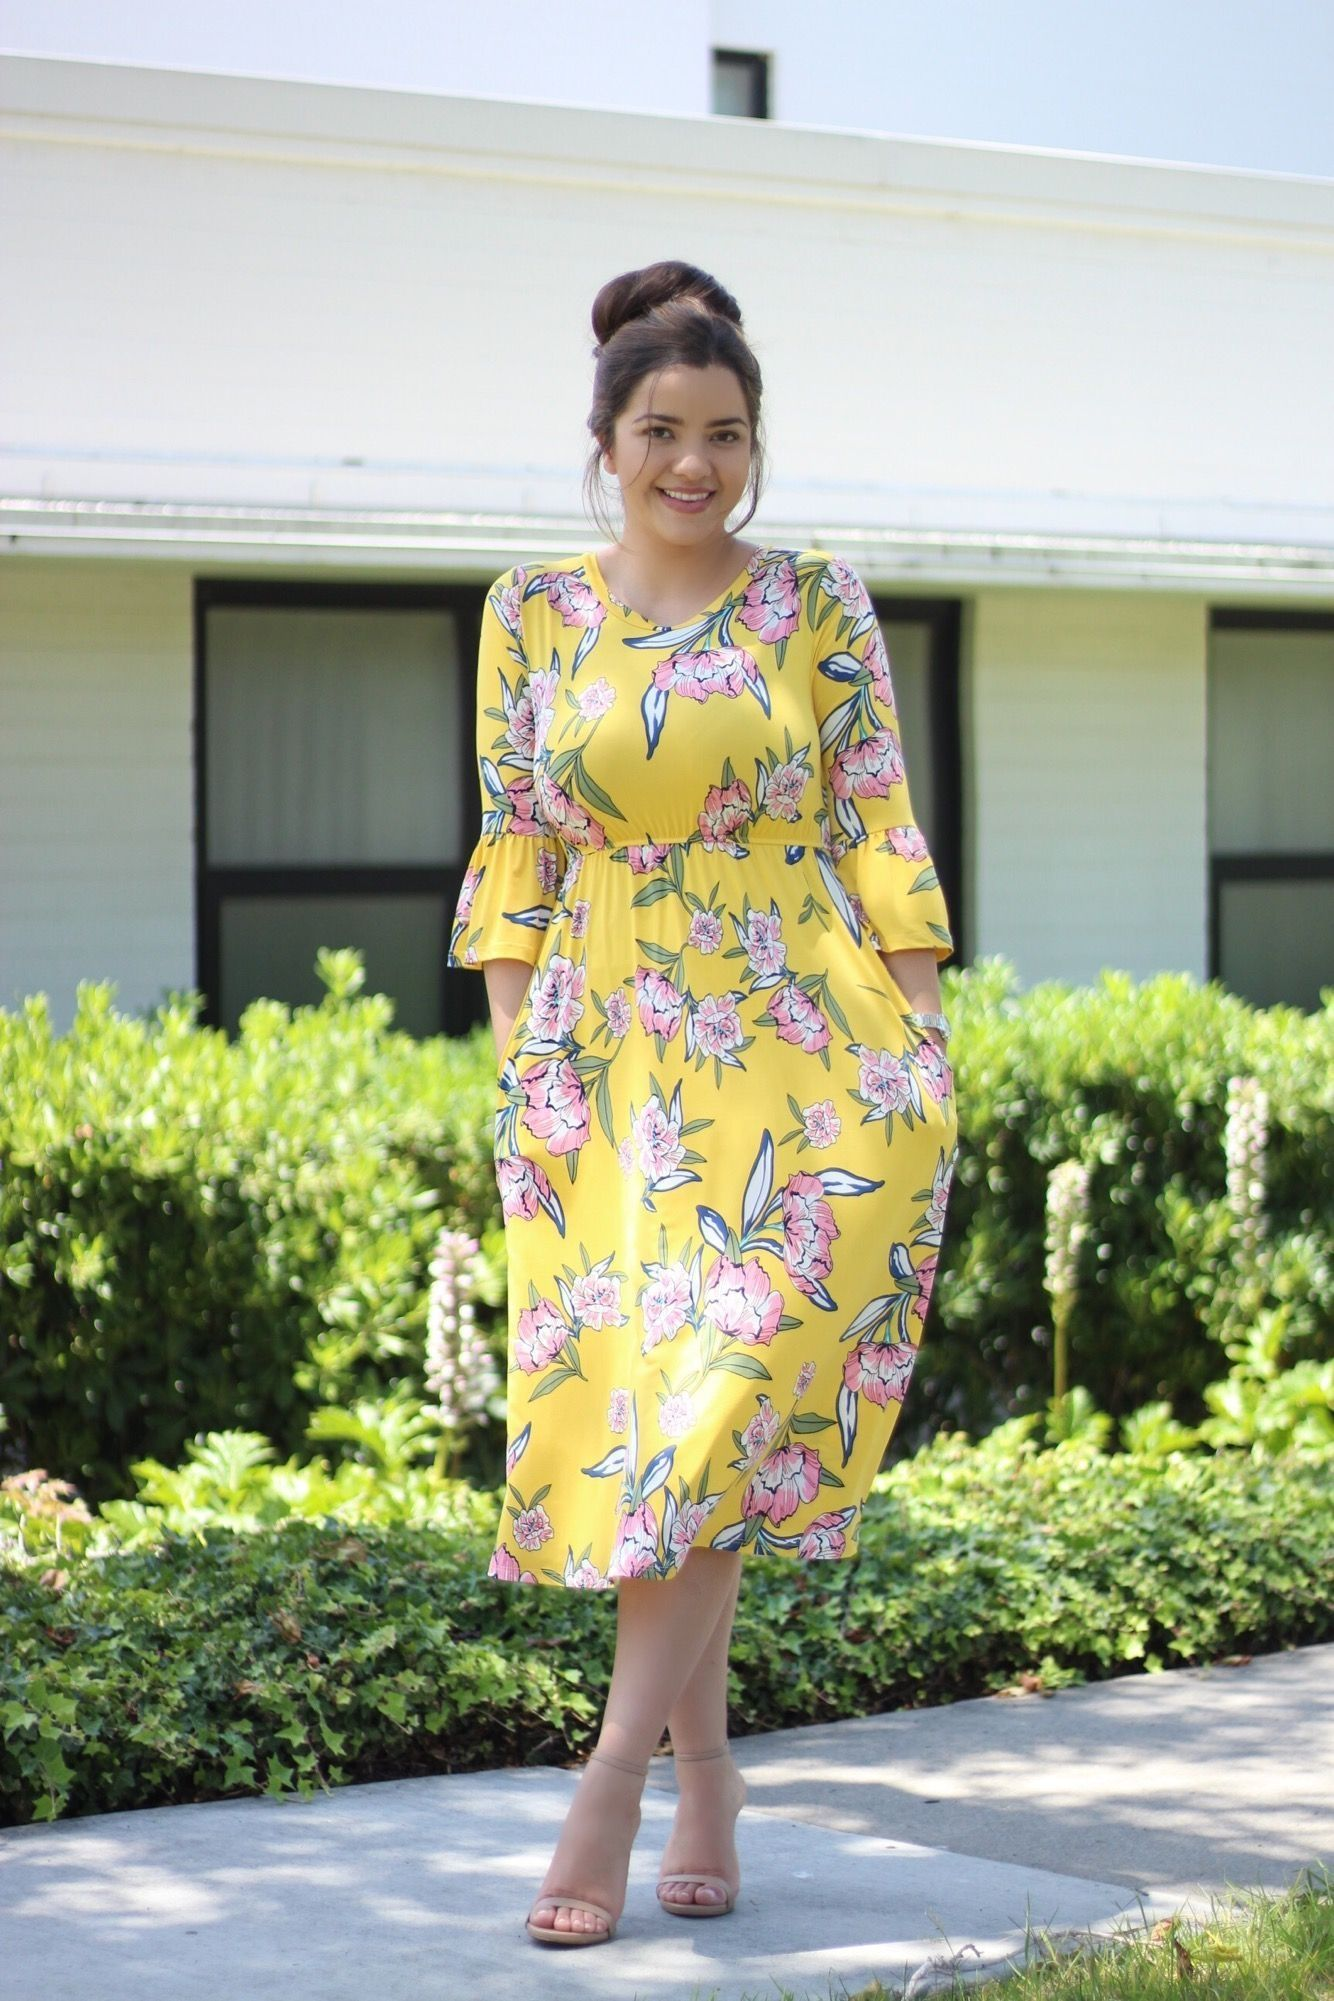 47 Graceful Plus Size Outfit With Dress For Everyday #churchoutfitfall